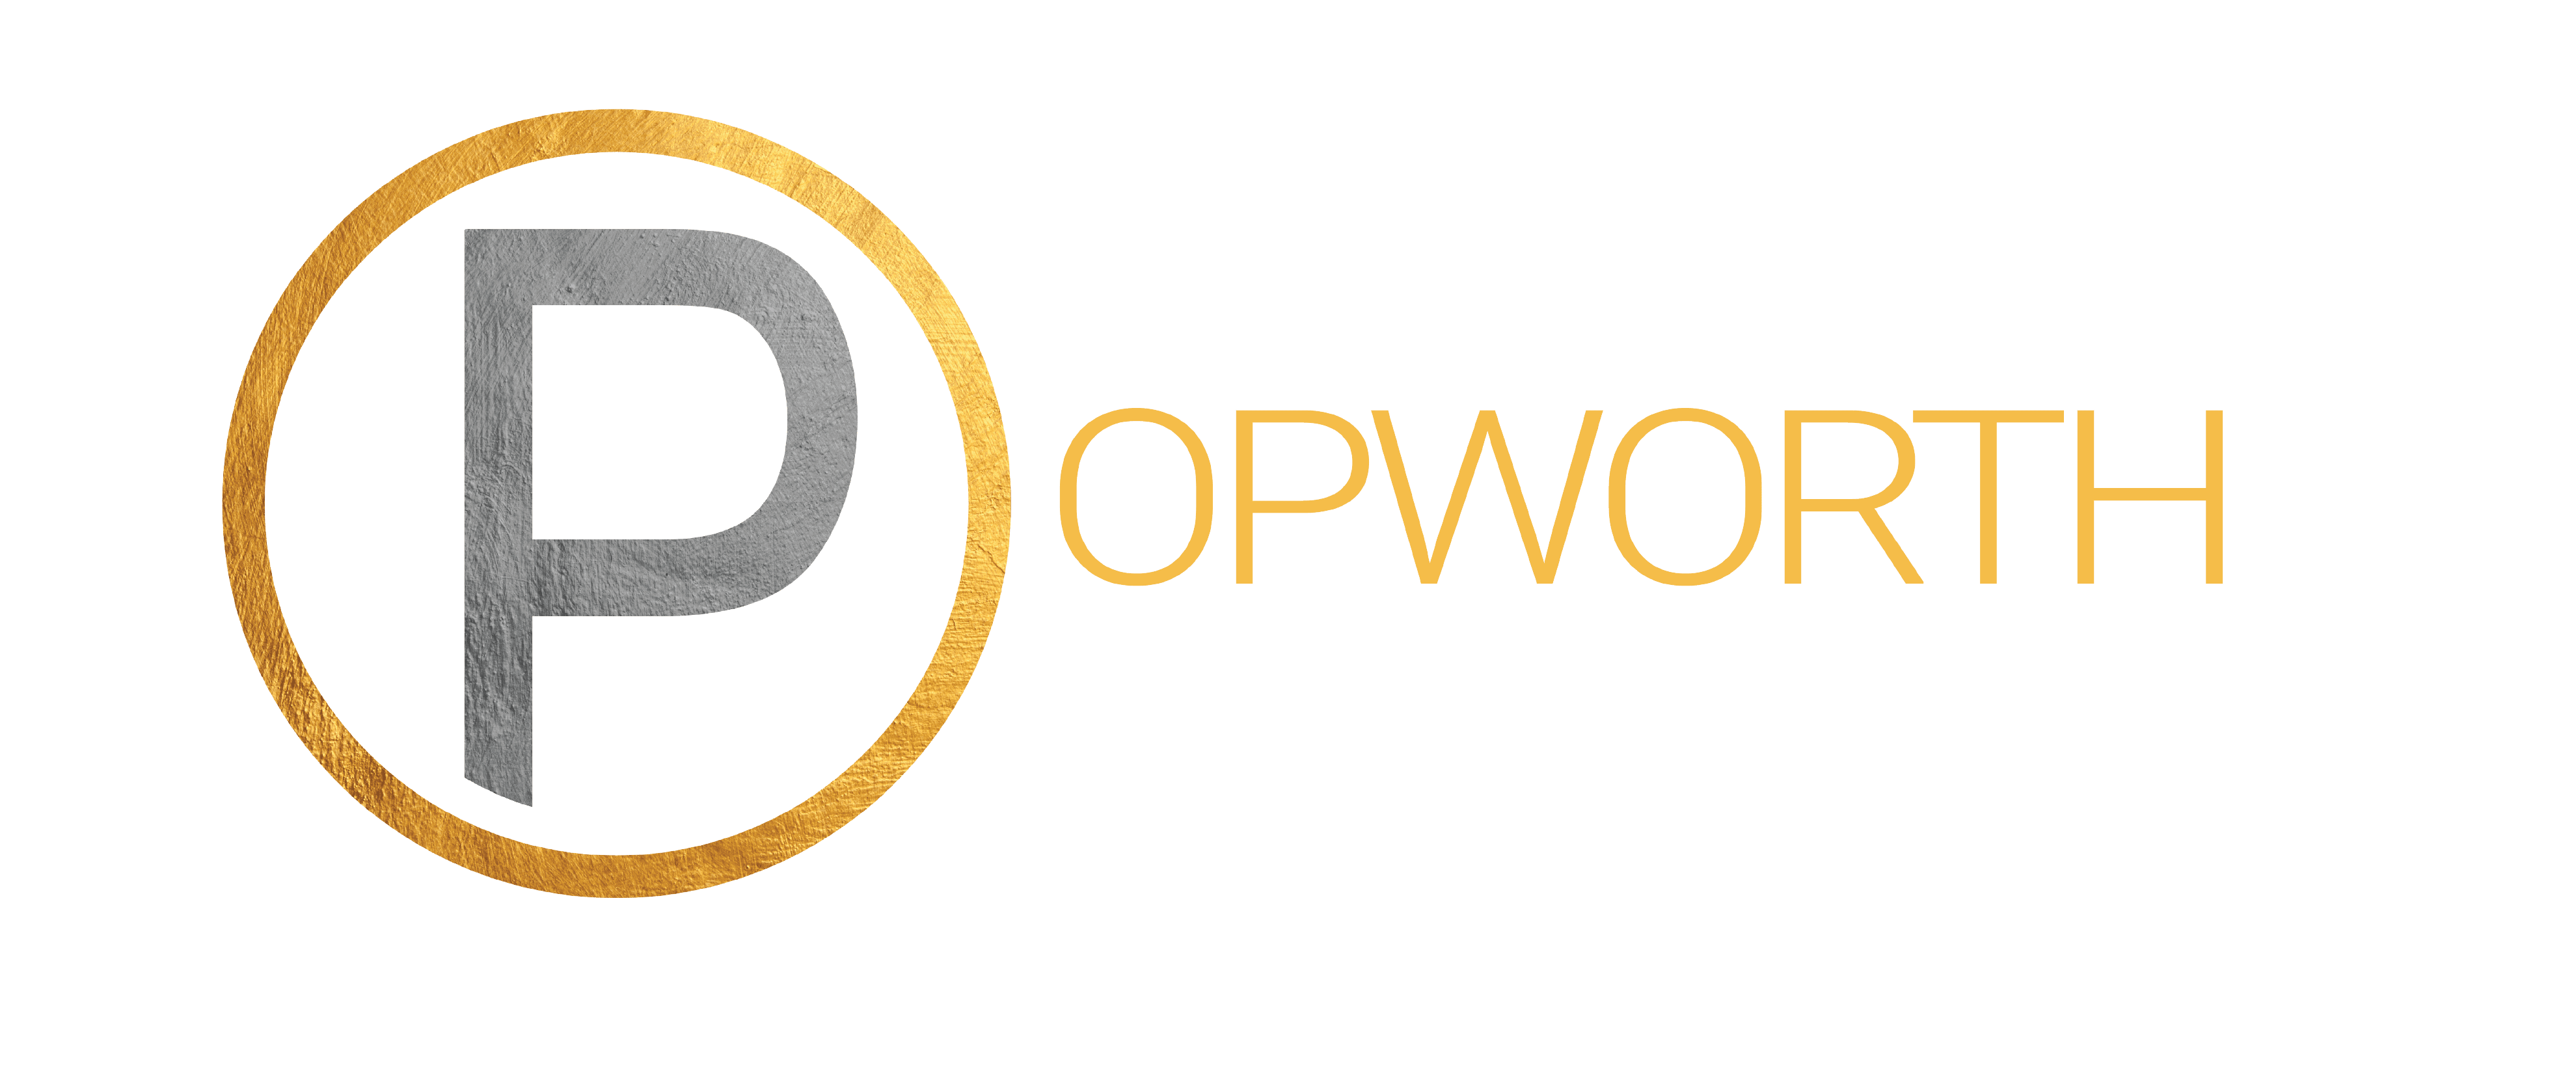 Opworth